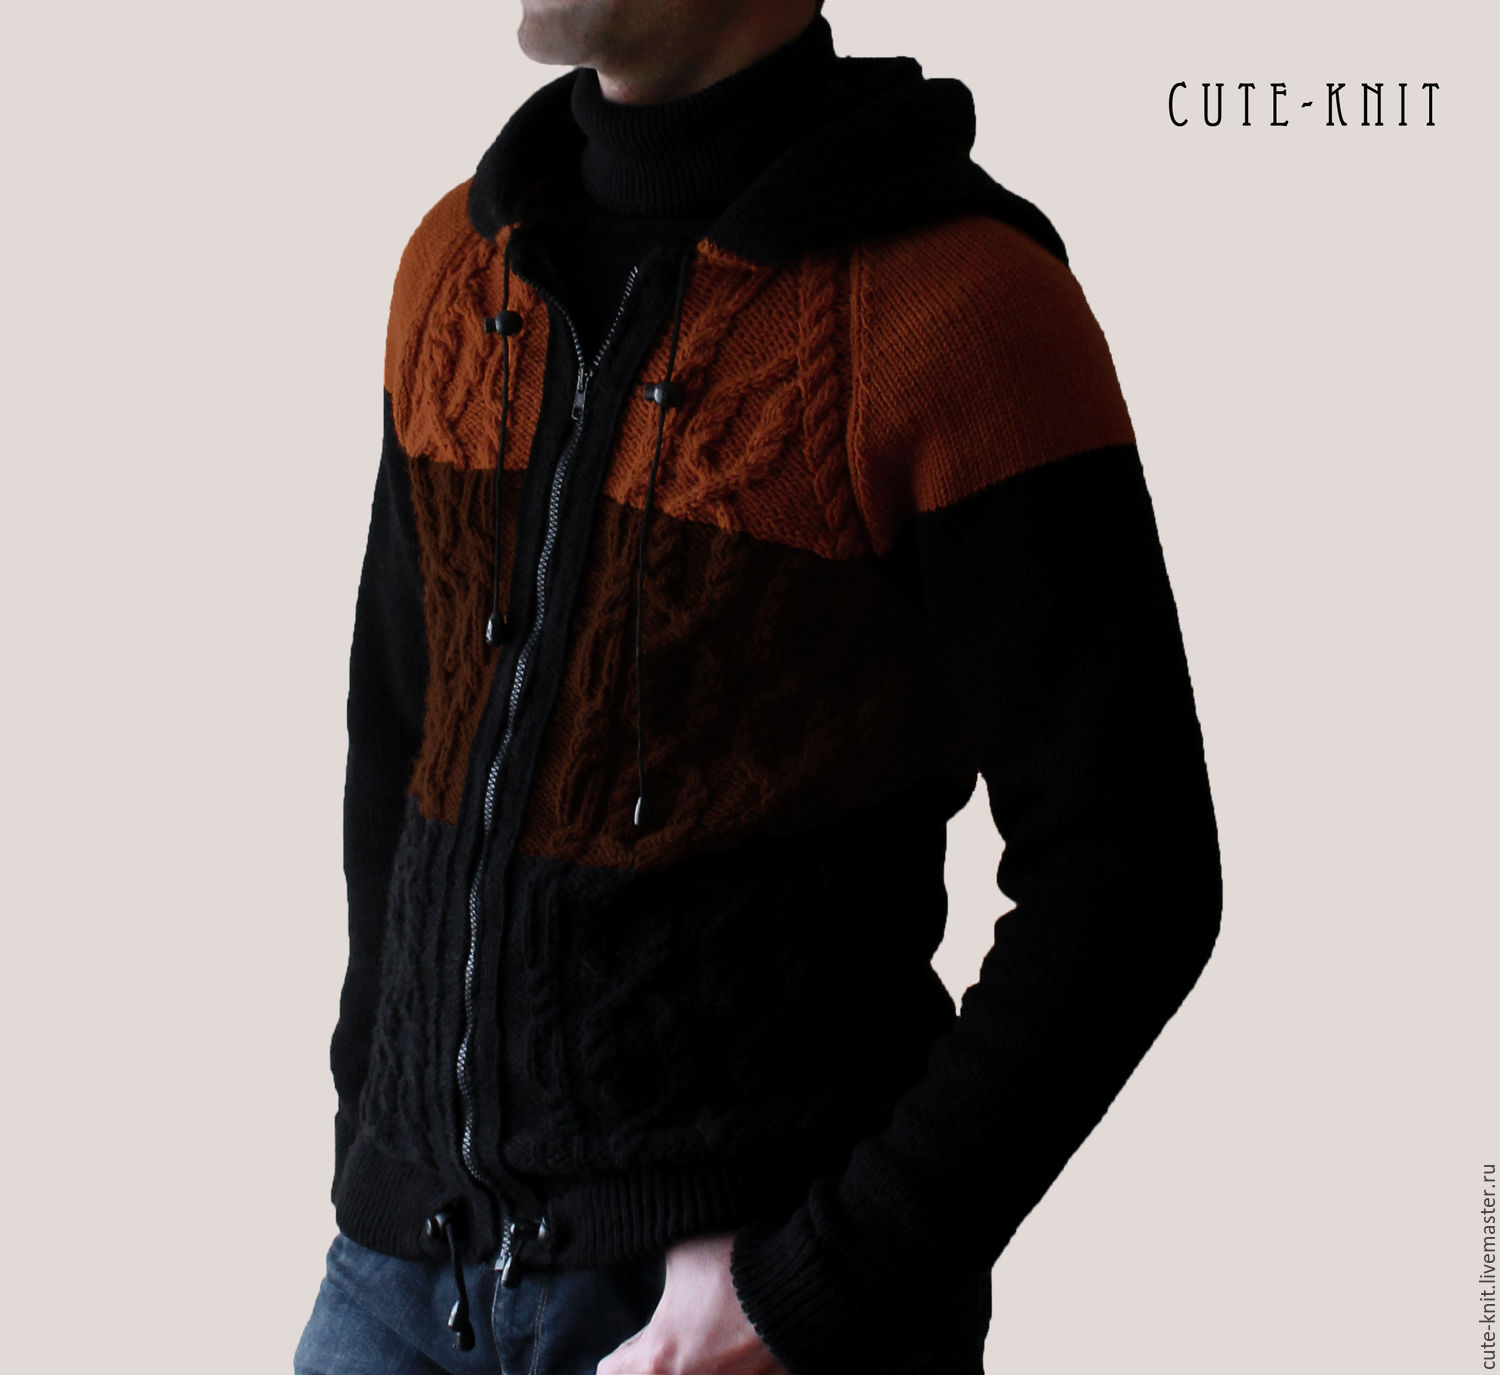 To better visualize the model, click on the photo. CUTE-KNIT NAT Onipchenko Fair Masters to Buy men's knitted jacket with hood and zipper